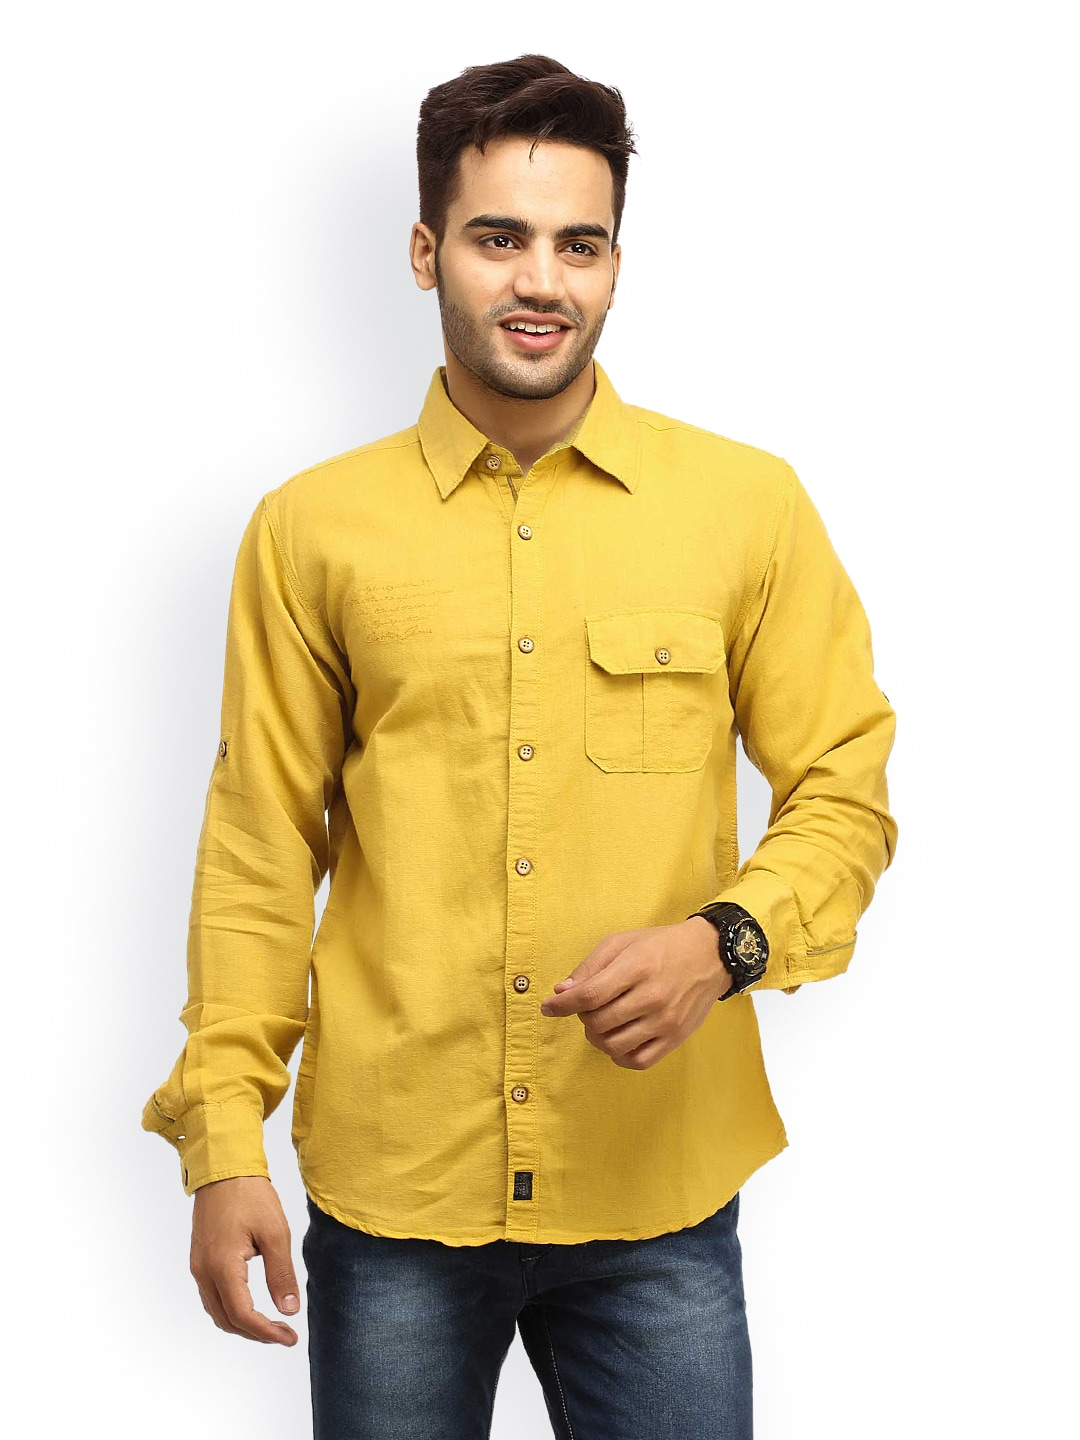 Mustard Gesture Jeans Men Mustard Yellow Casual Shirt